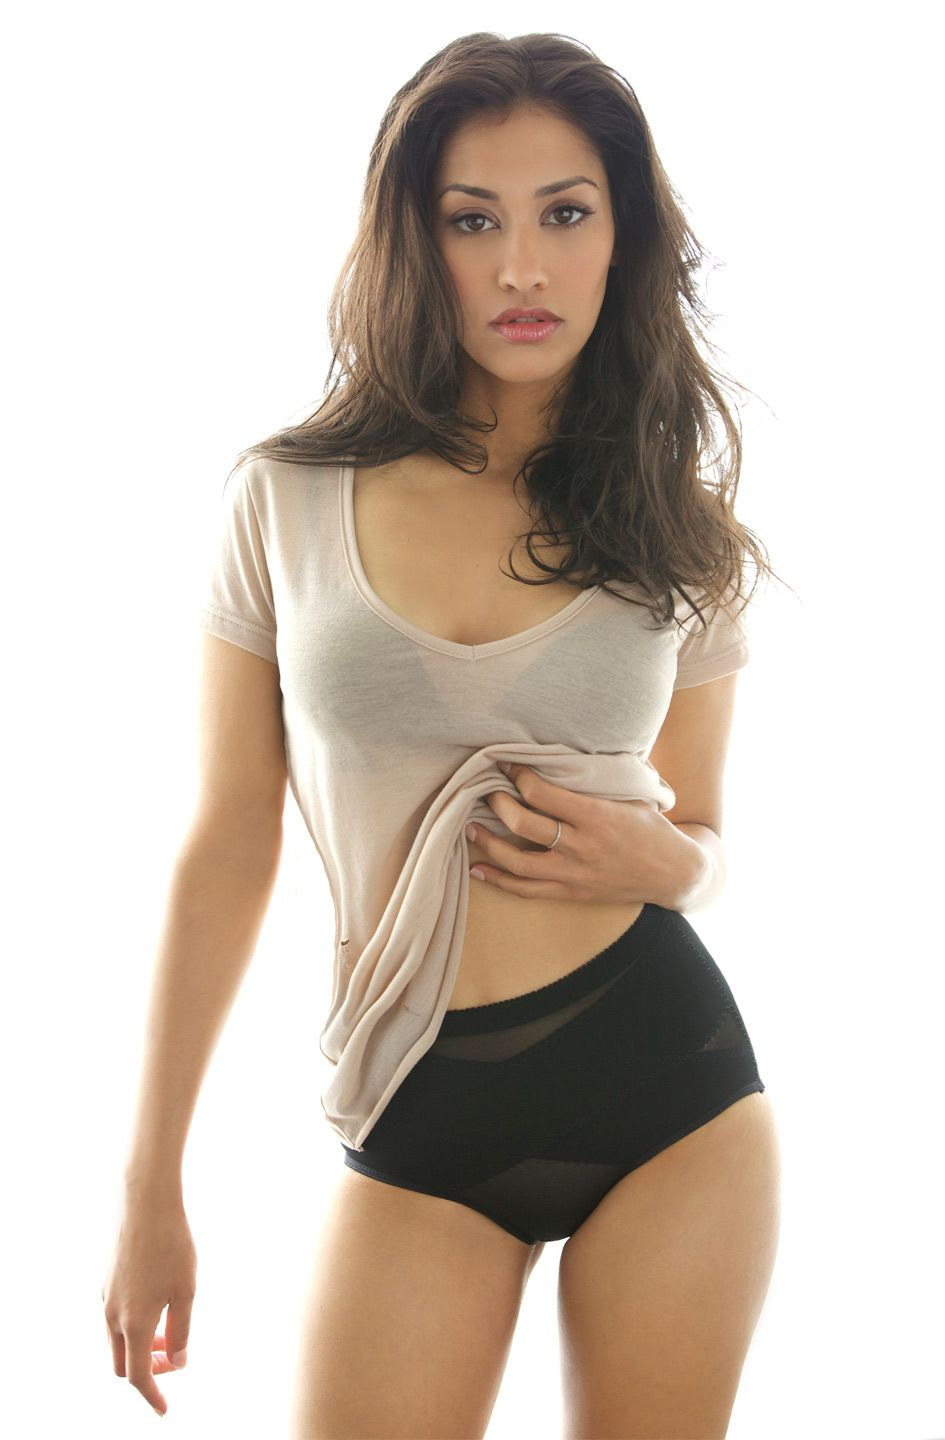 janina gavankar height